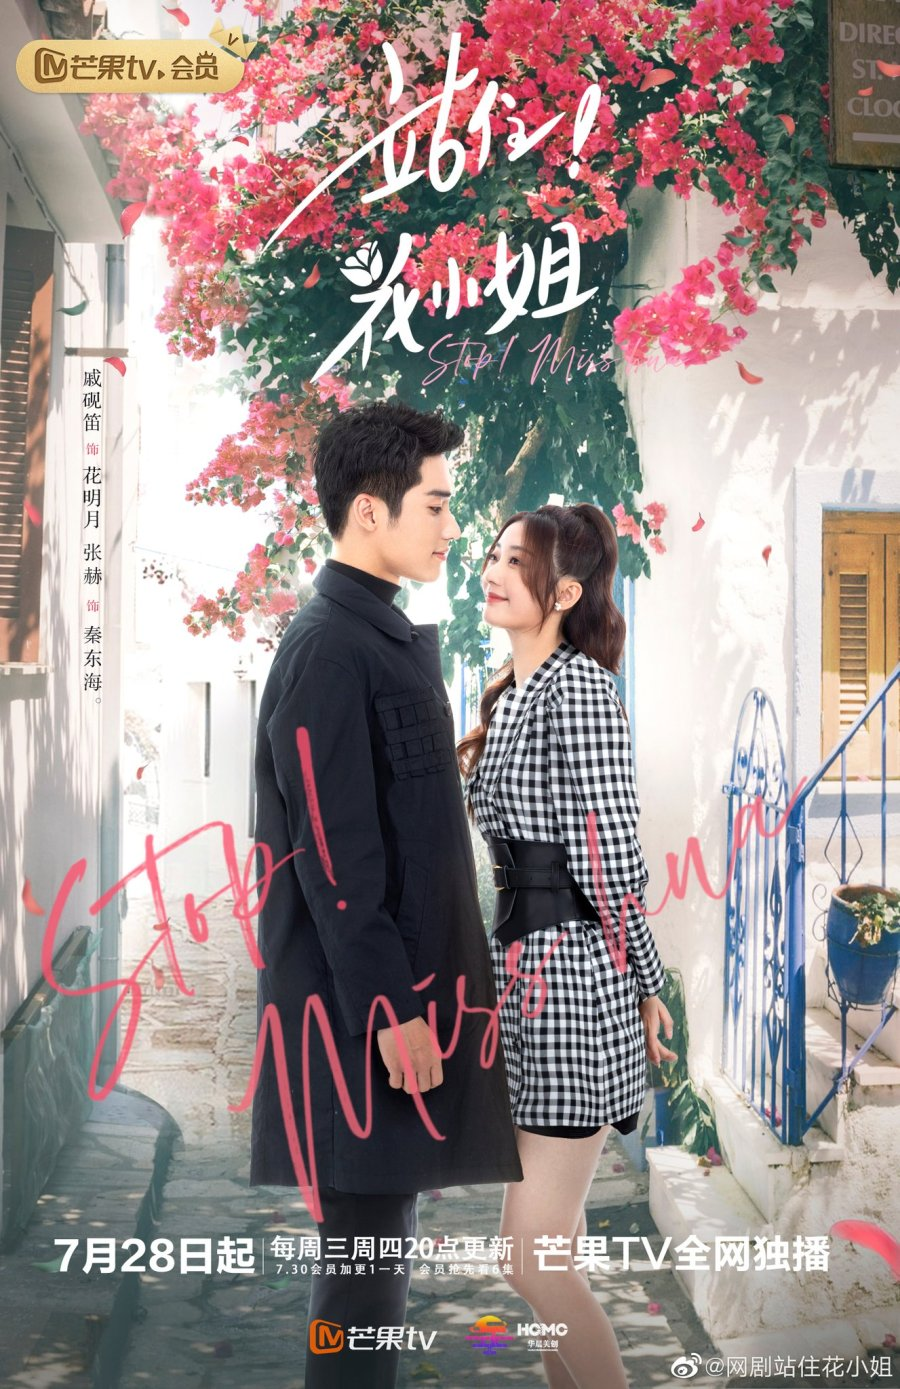 Stop Miss Hua Episode 11 Release Date, Cast And Where To Watch Online English Sub.